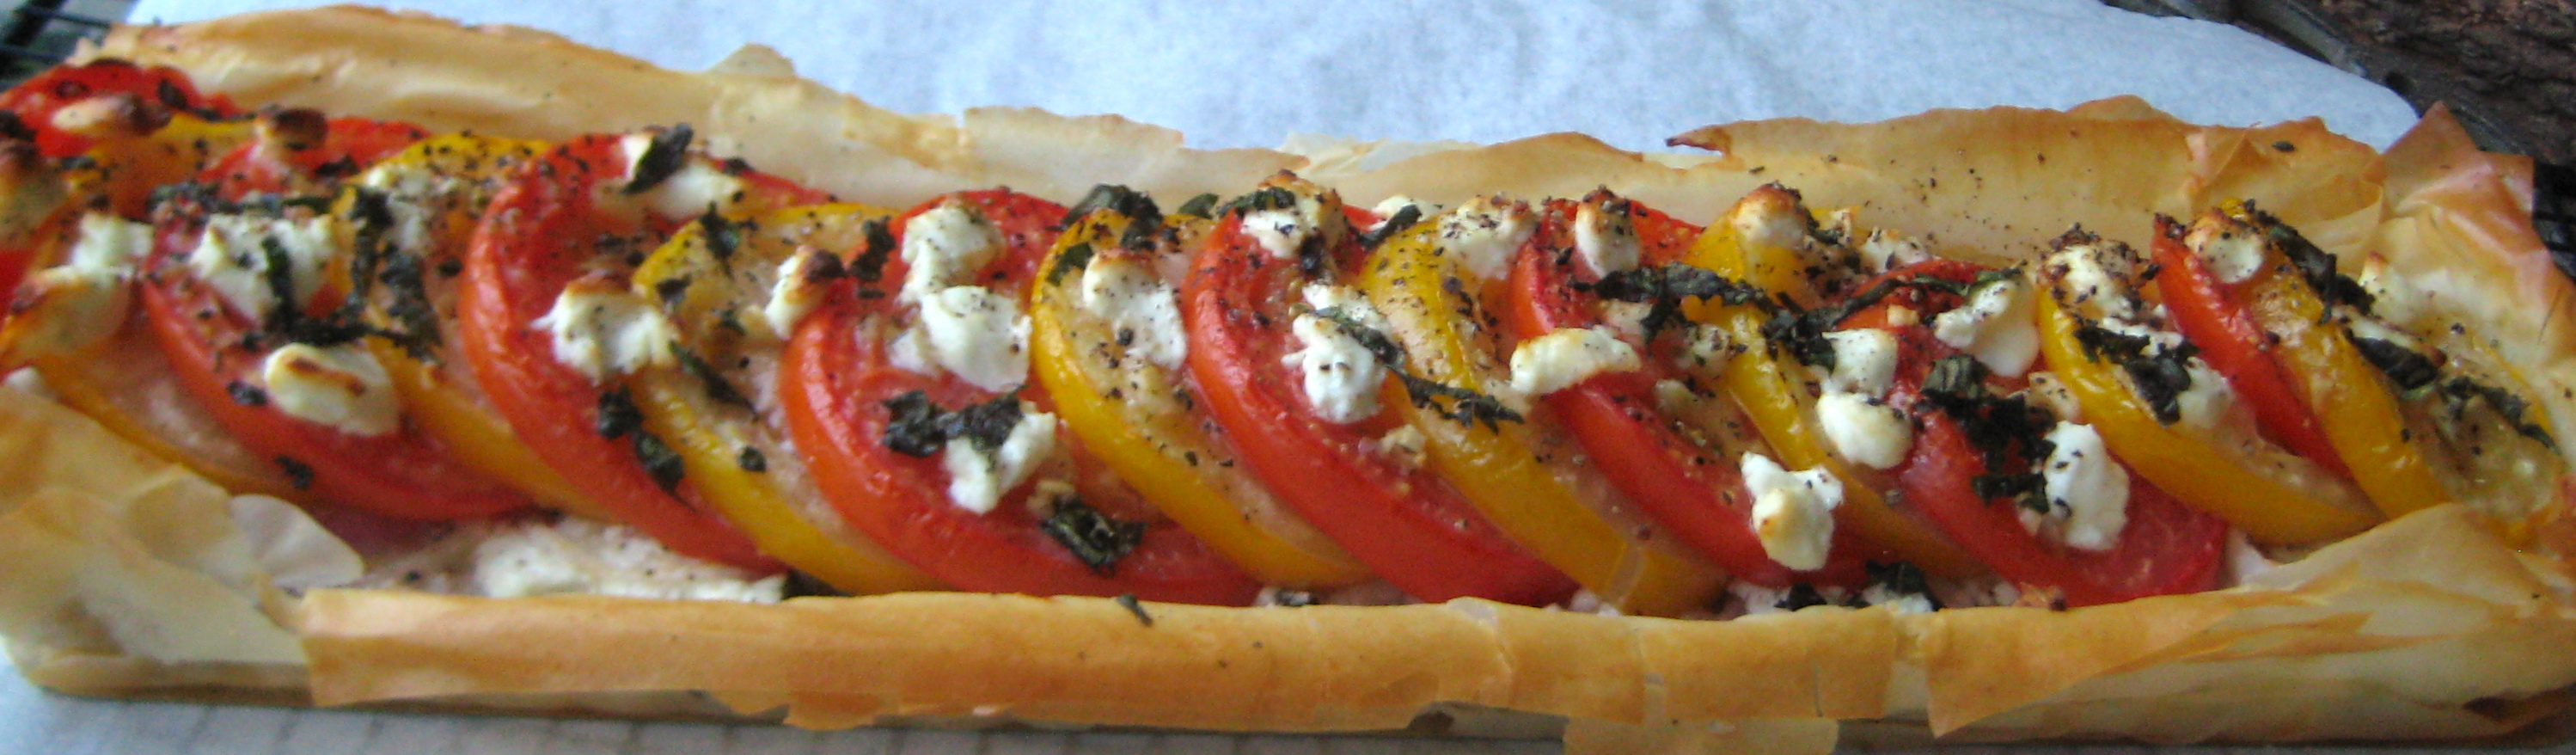 Tomato and Goat Cheese Tart | Urban Cottage Life